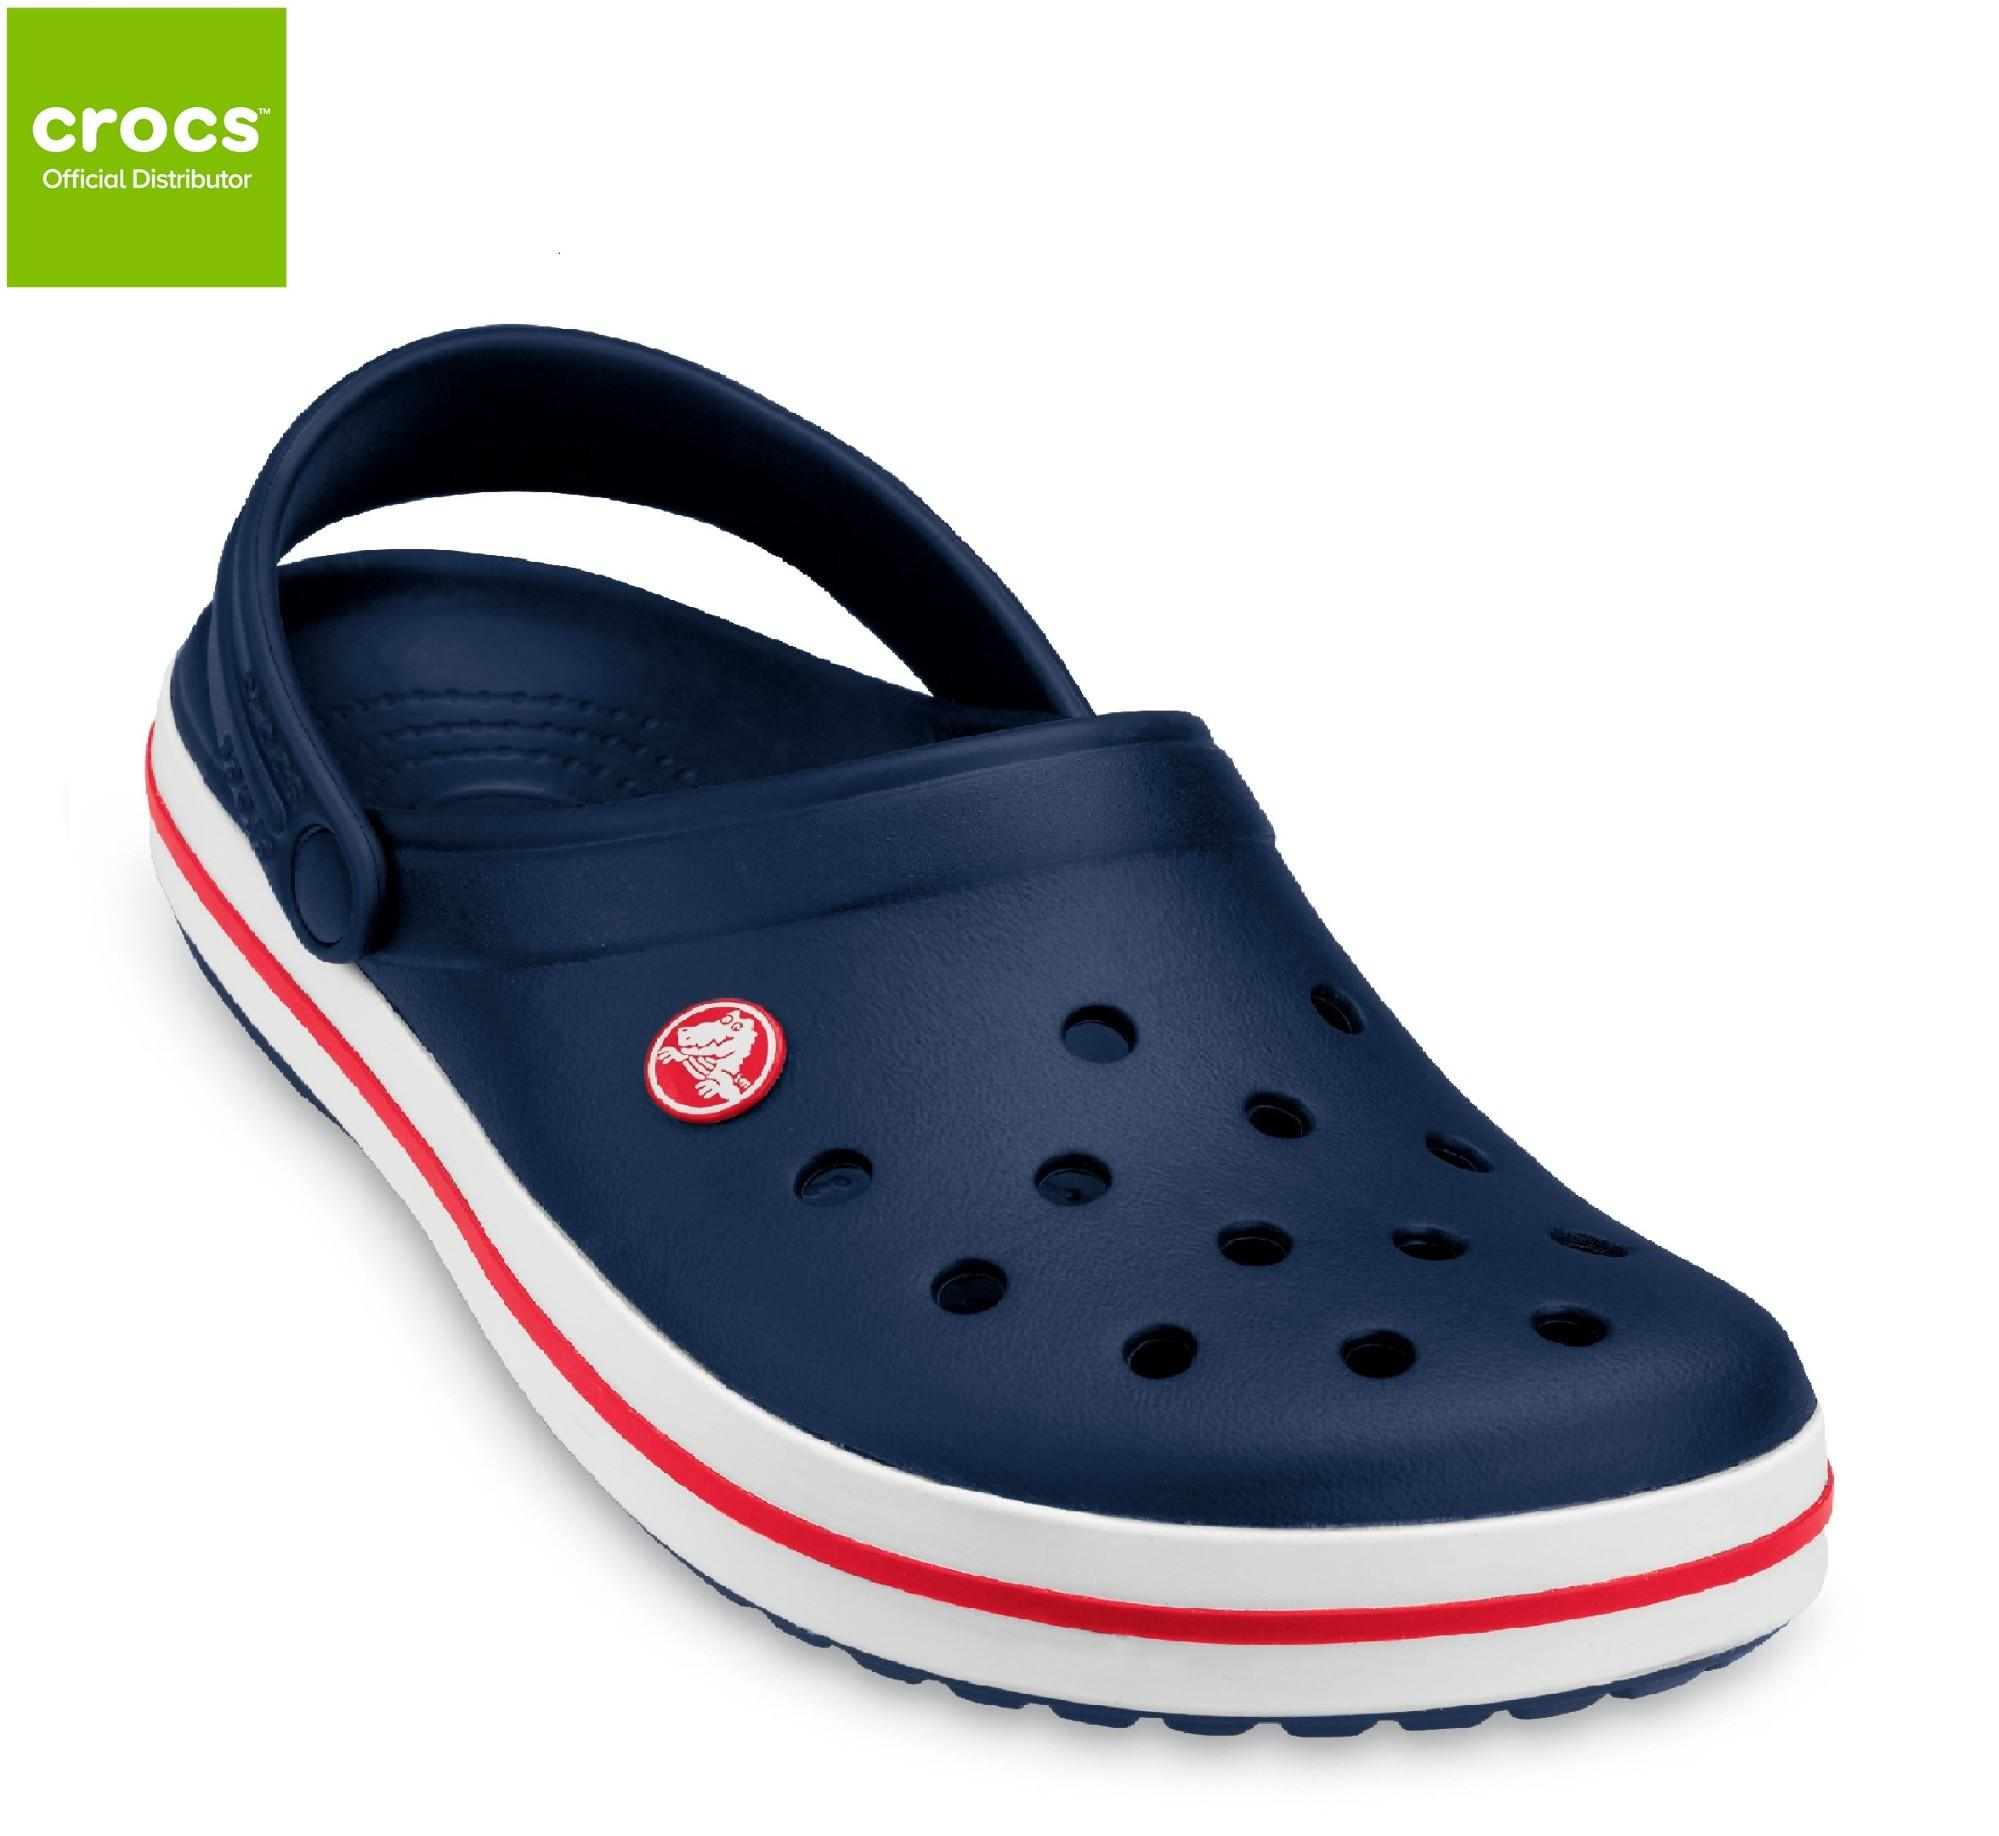 06521cee4 Crocs Philippines  Crocs price list - Crocs Flats